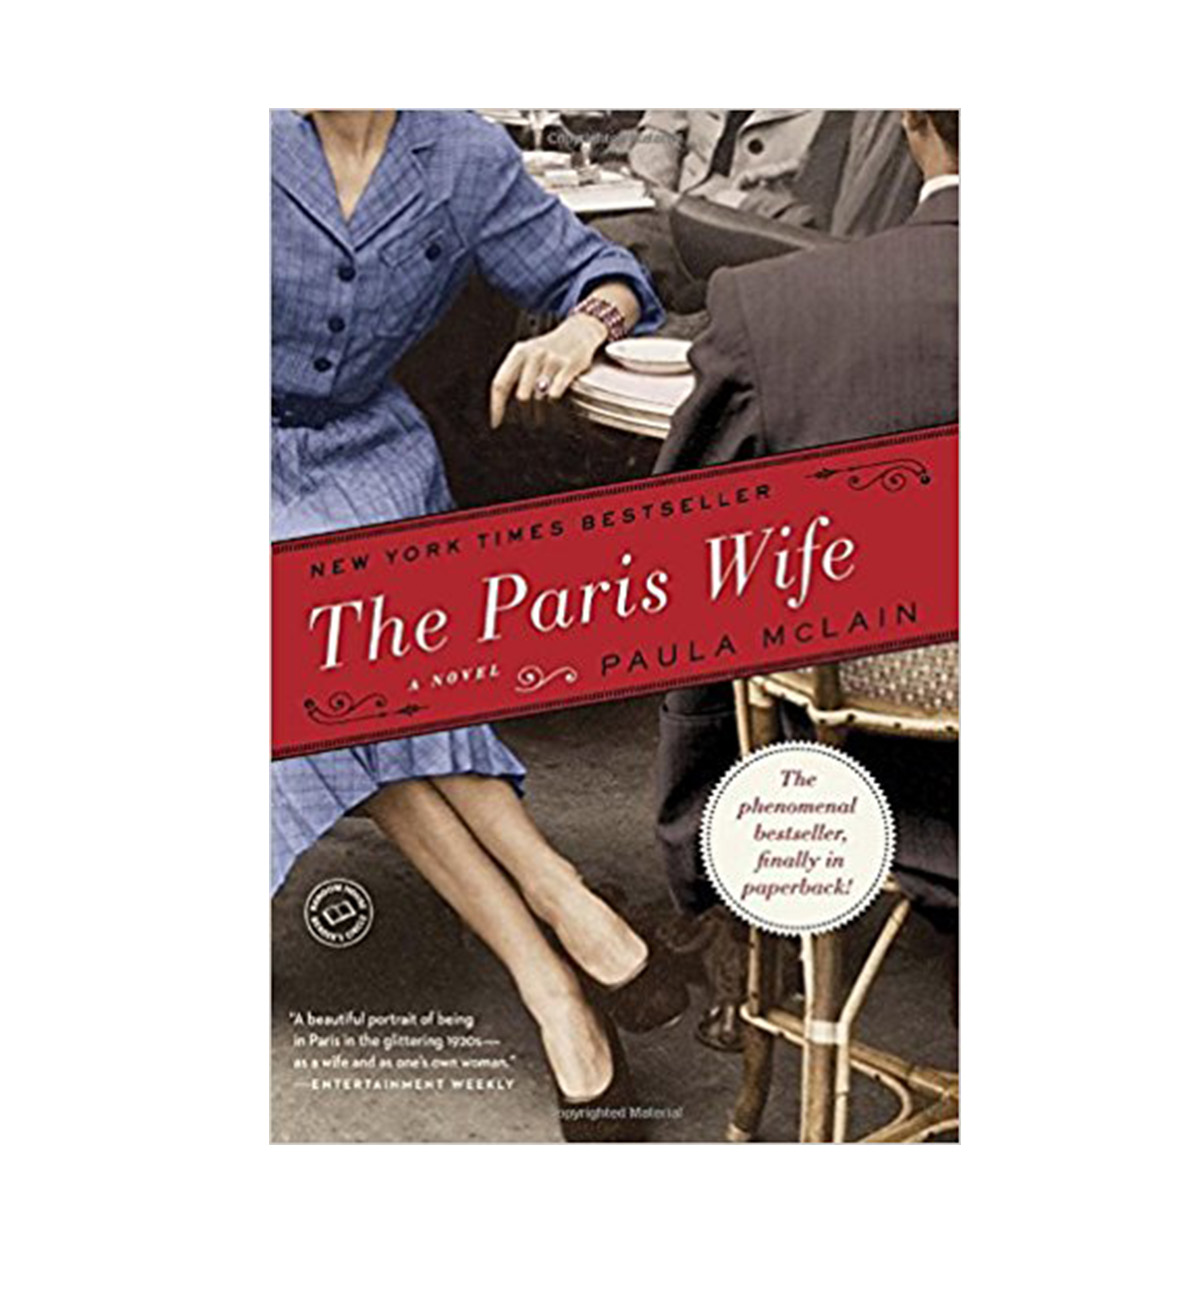 The Paris Wife book cover